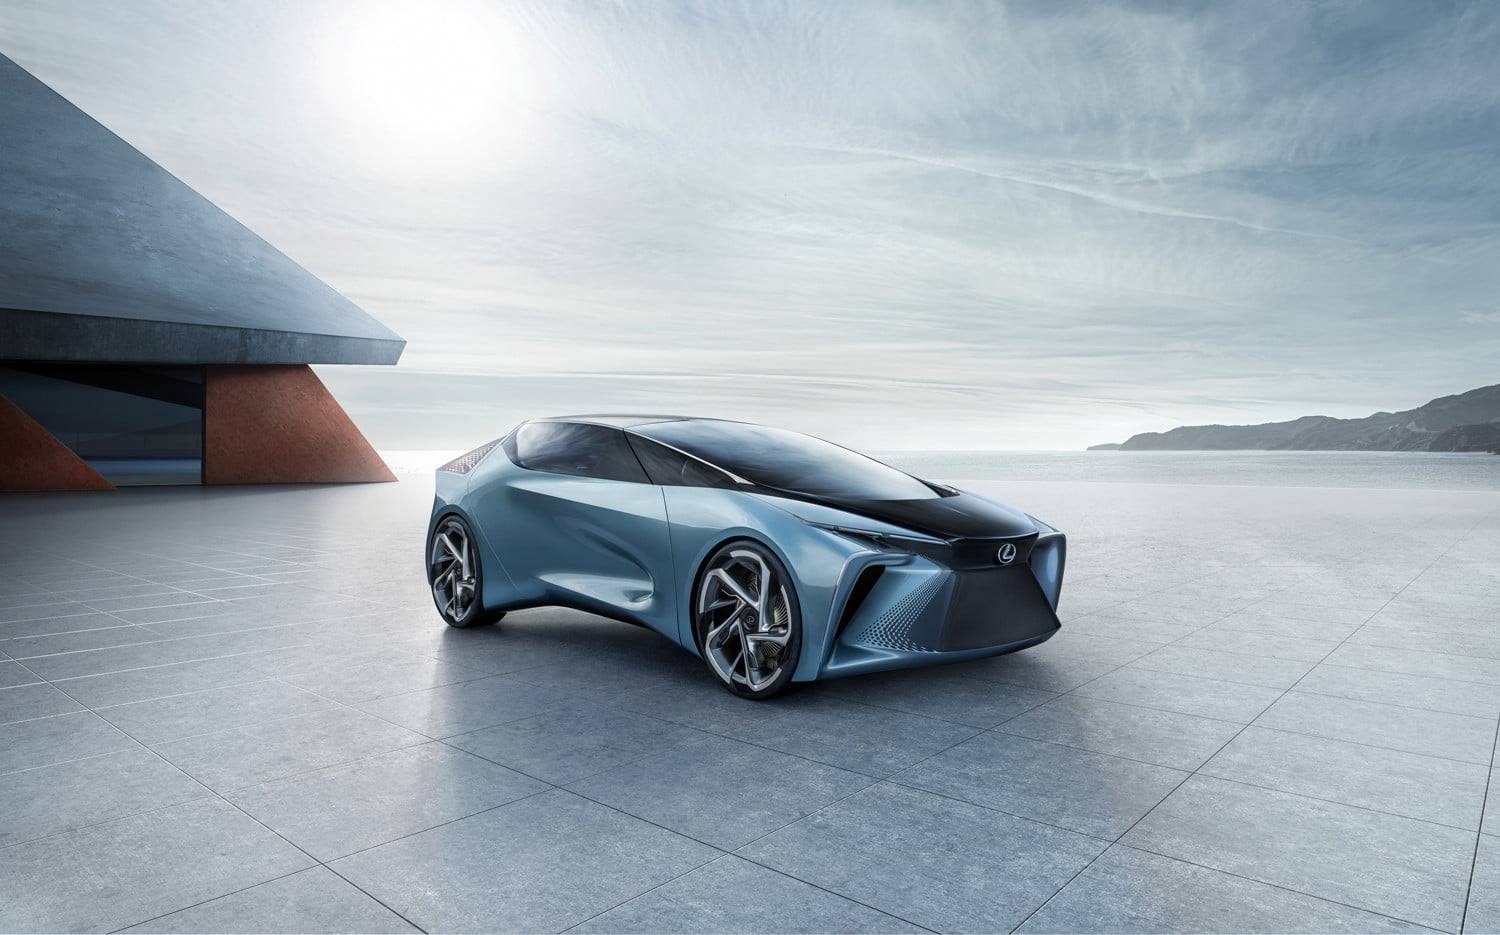 Lexus plugs in its electric car offensive with an innovative concept